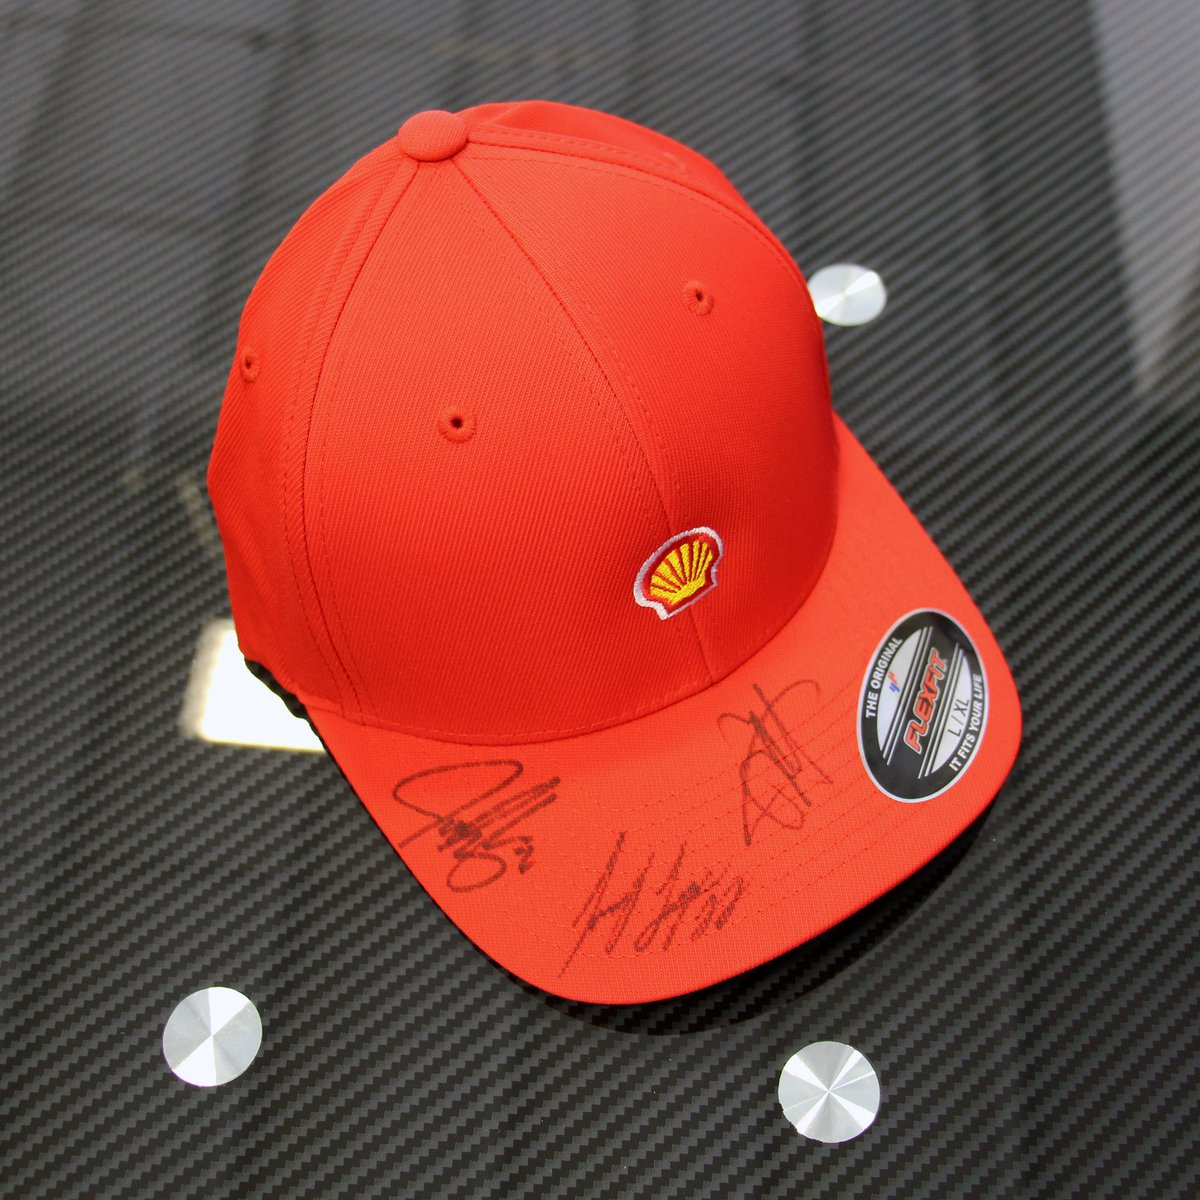 #WinItWednesday is back with a signed #SebastianVettel, myself & @josefnewgarden @Shell hat. #TeamJL